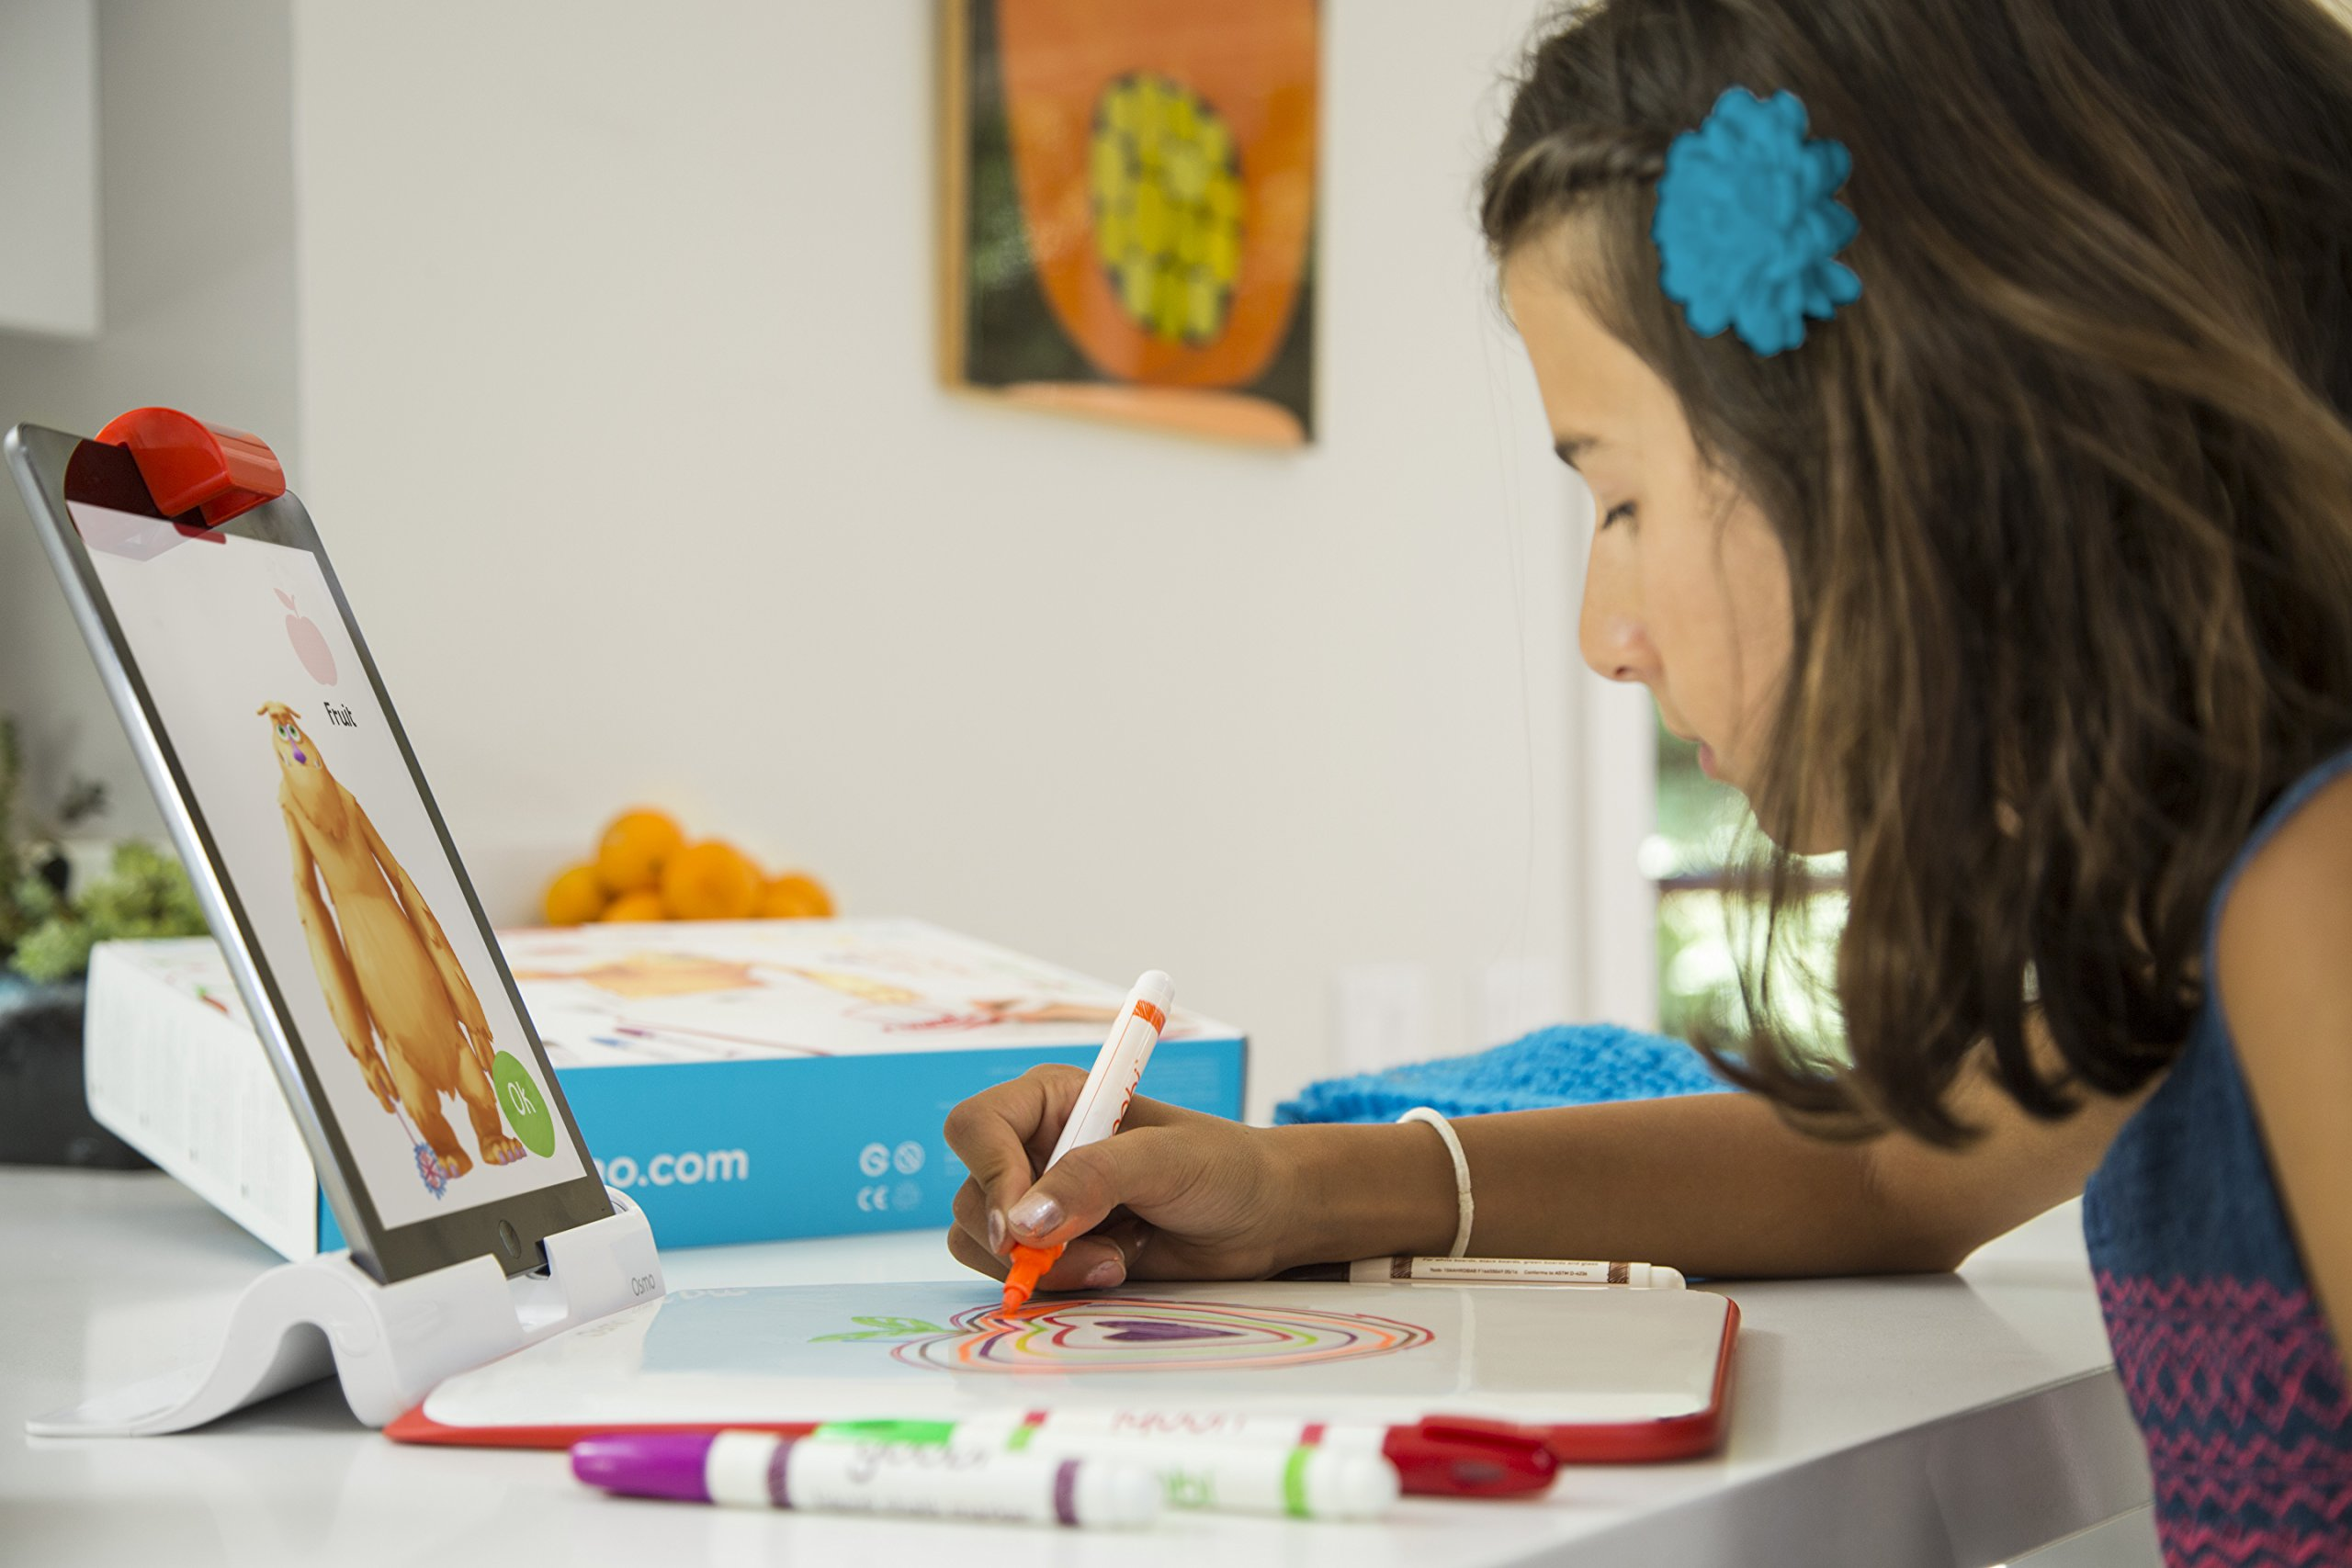 Osmo Creative Kit with Monster Game (Ipad Base Included) by Osmo (Image #5)